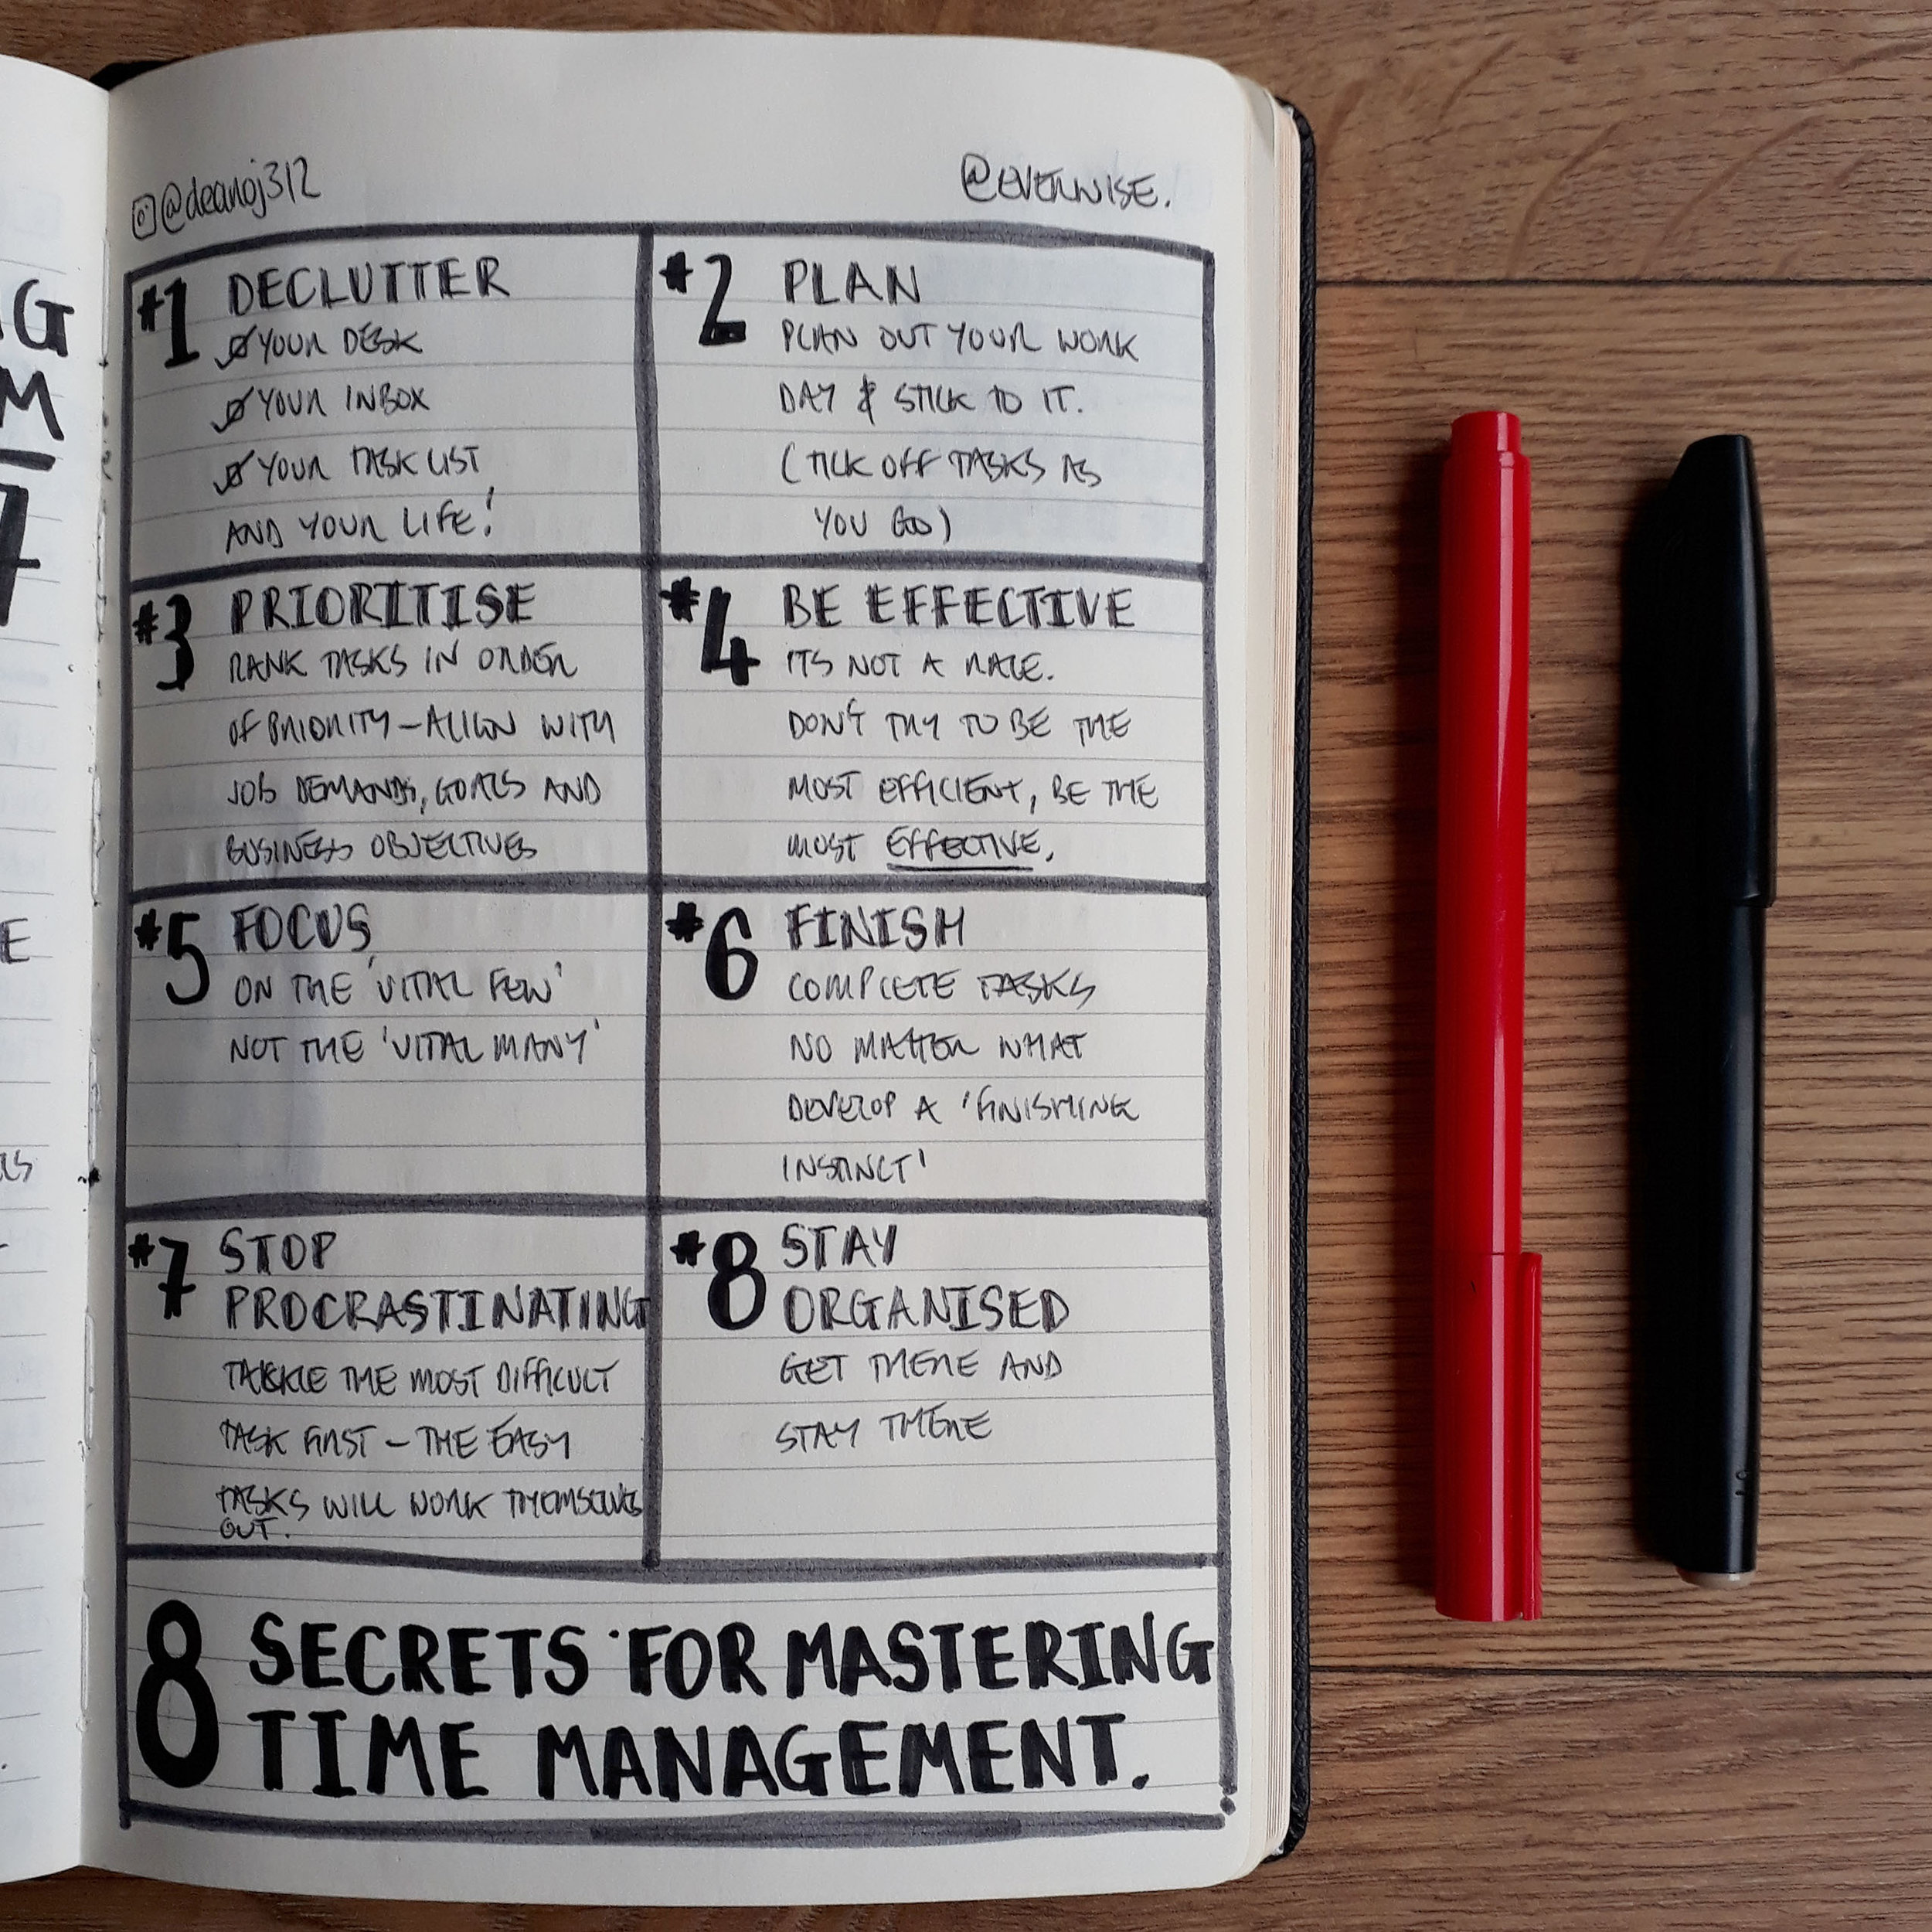 8SecretsForMasteringTimeManagement1.jpg